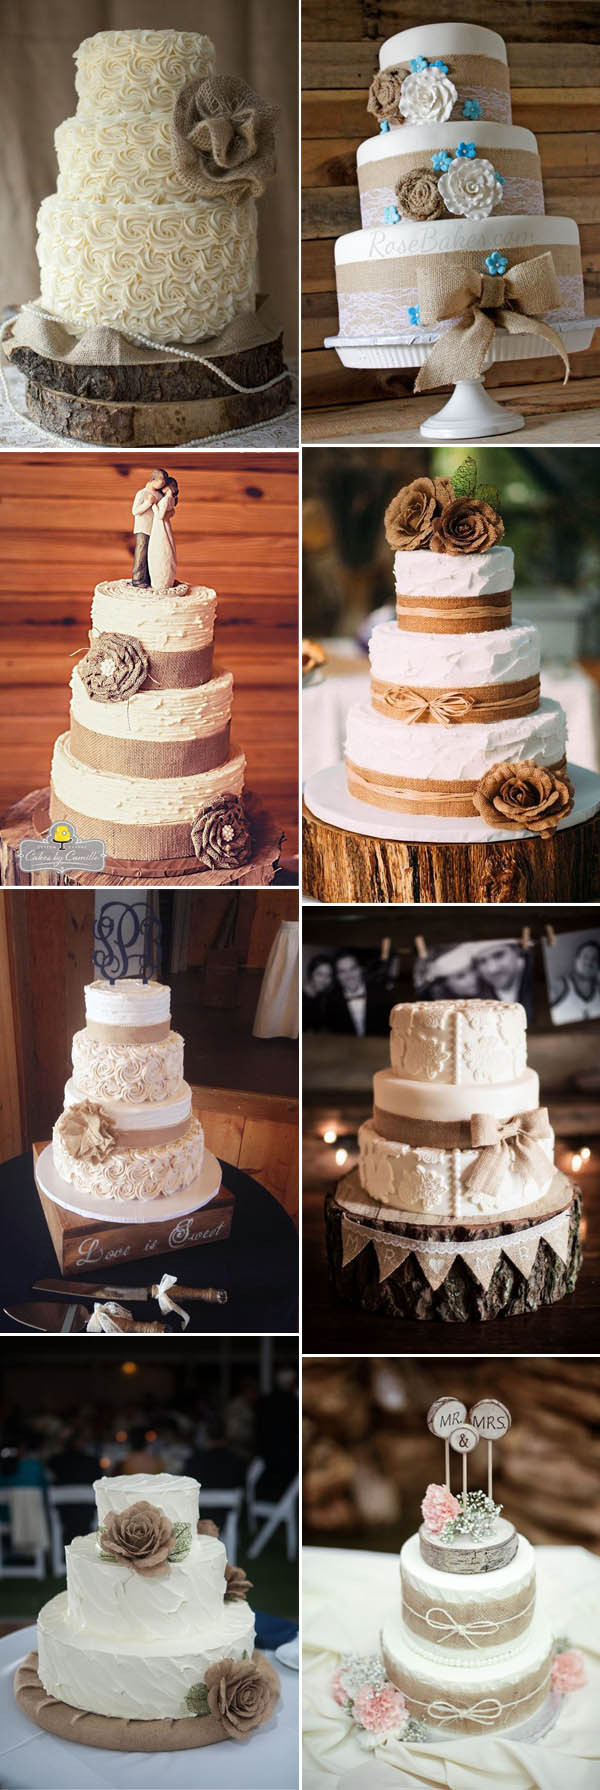 Rustic Wedding Cakes Ideas  The Most plete Burlap Rustic Wedding Ideas For Your